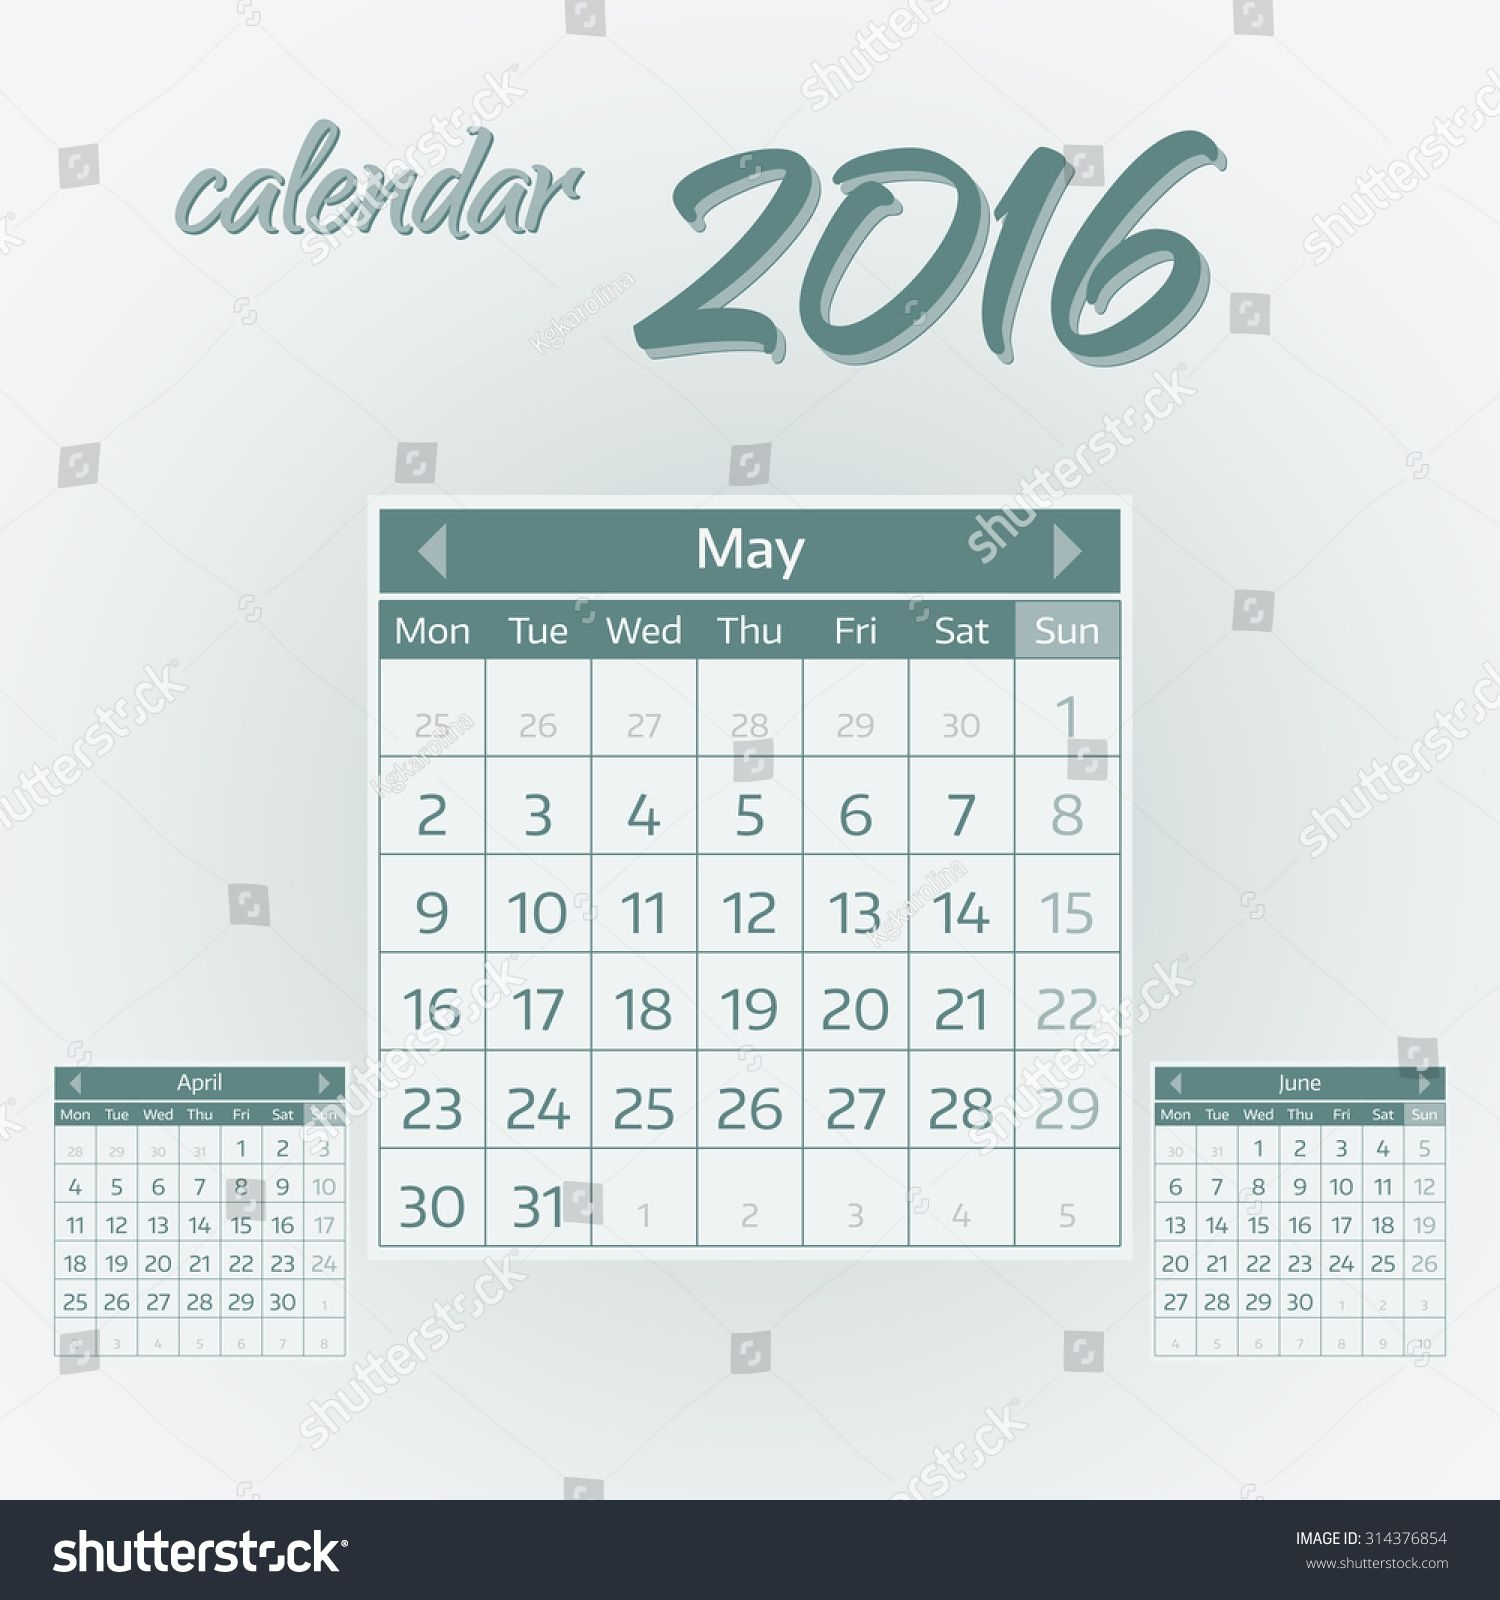 may 2016 simple european calendar 2016 stock vector (royalty